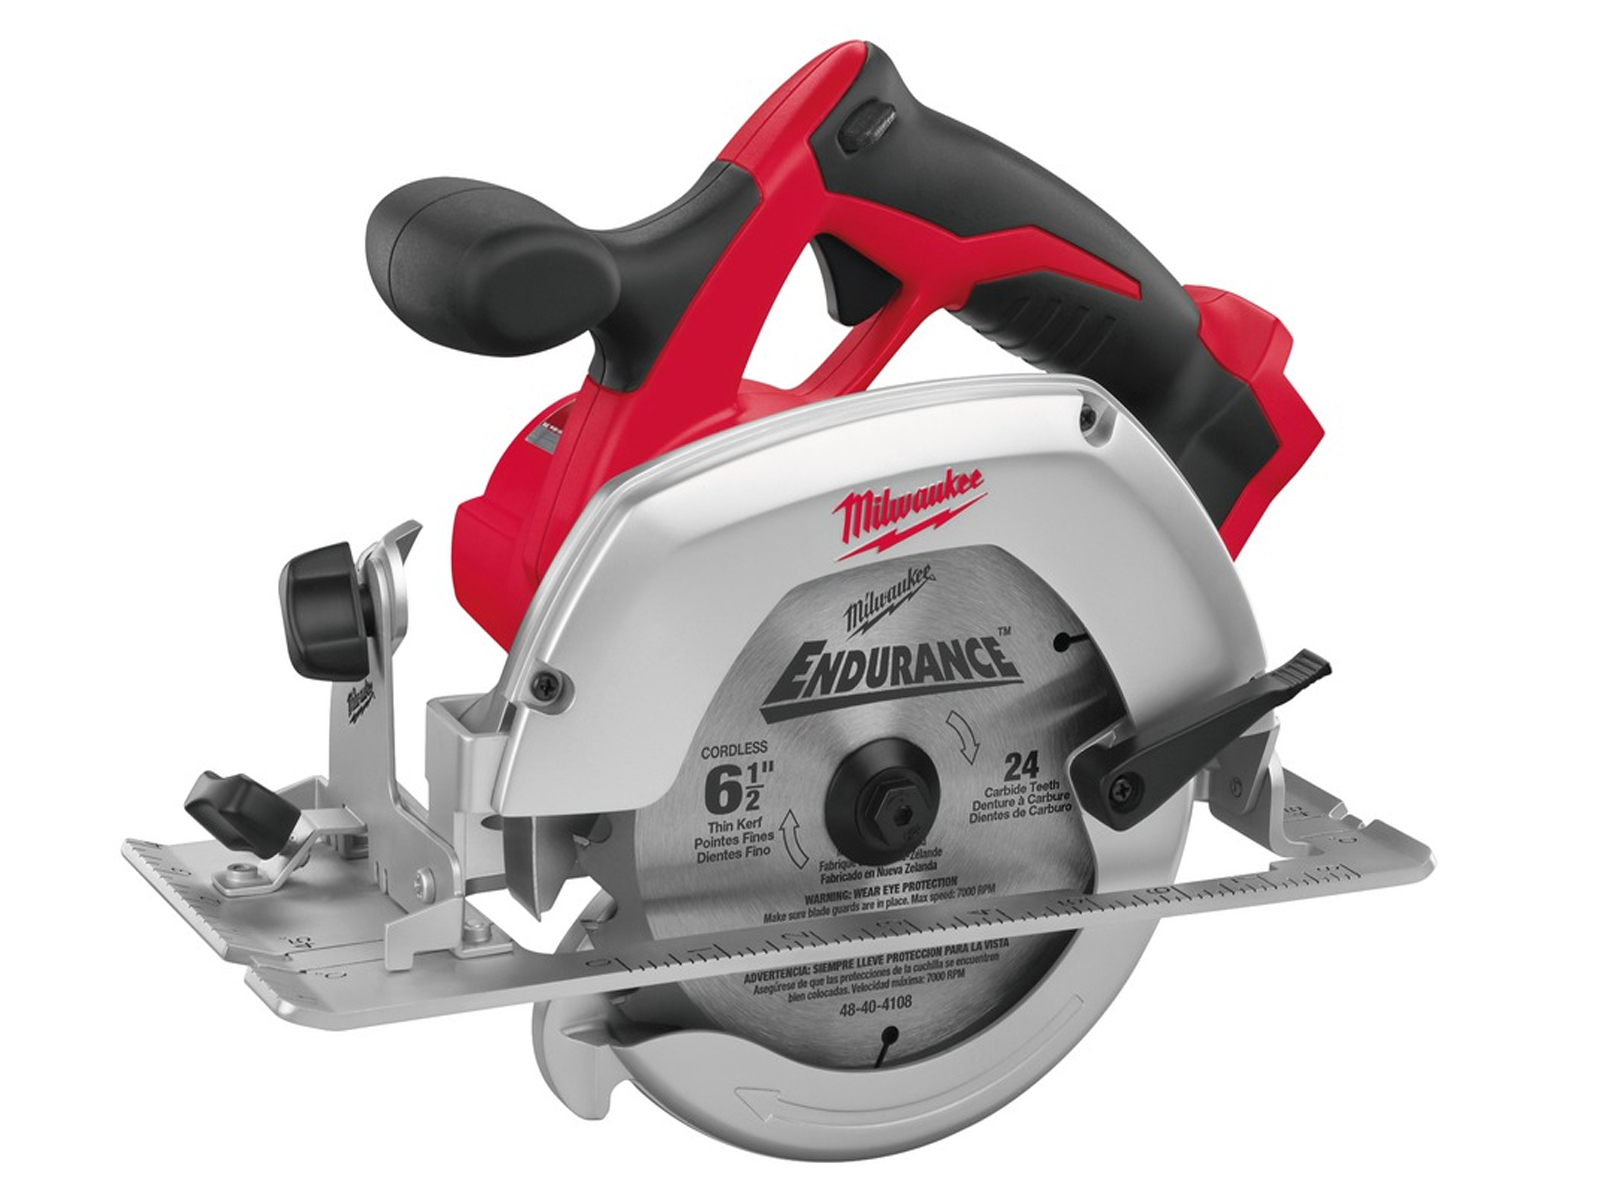 MILWAUKEE 18V HEAVY DUTY CIRCULAR SAW - HD18CS - BODY ONLY